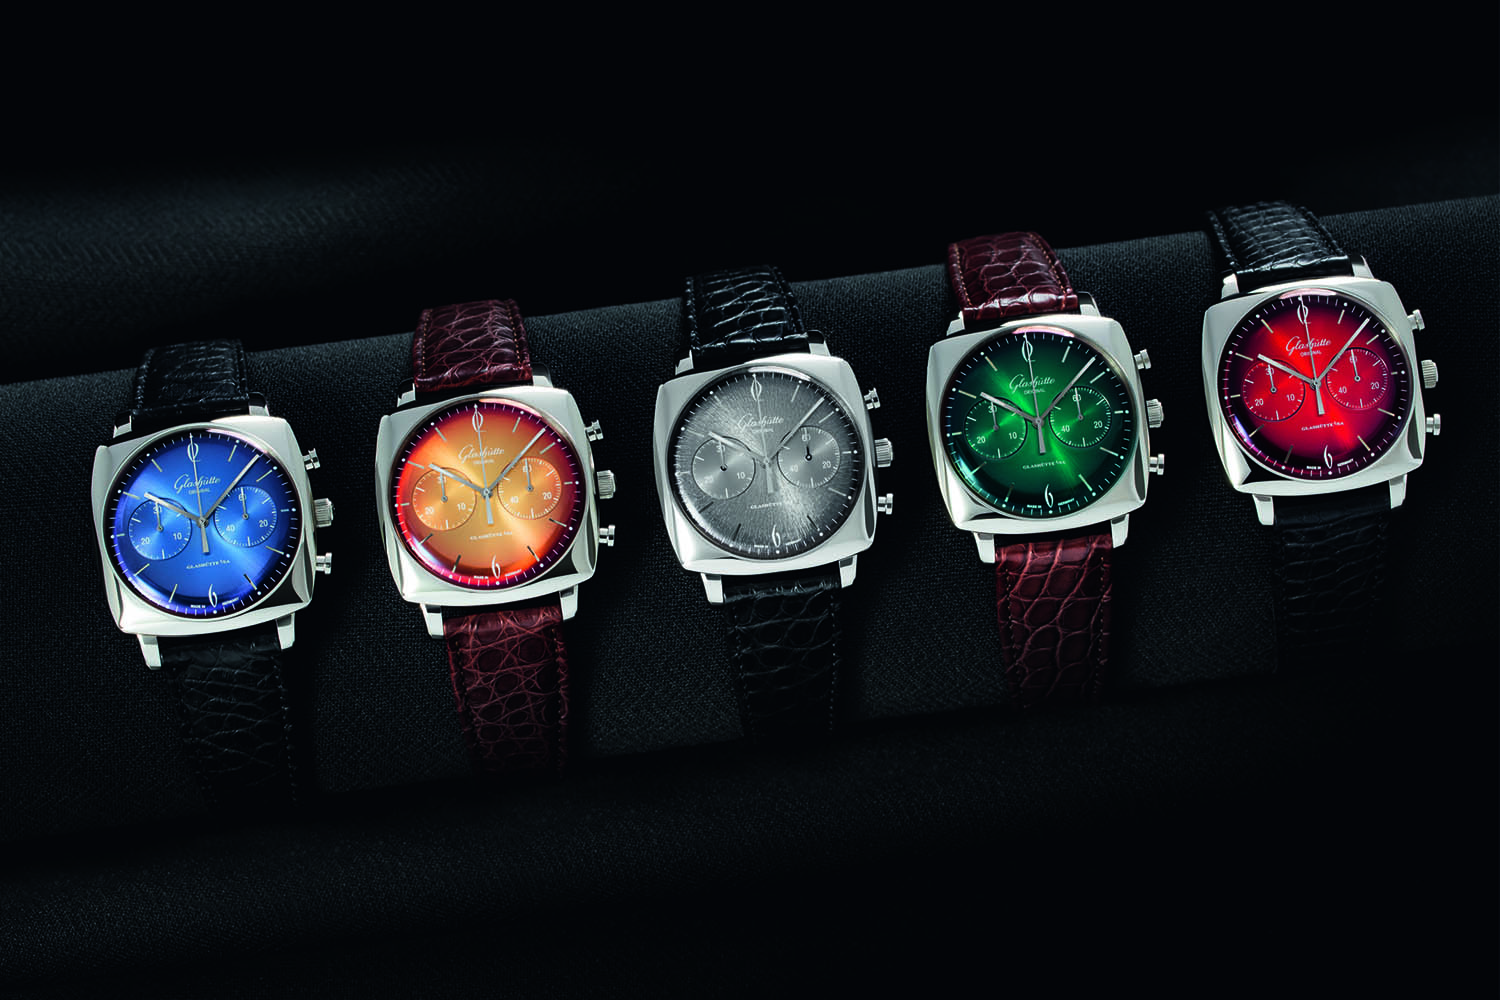 glashutte original sixties watches with their colorful dials